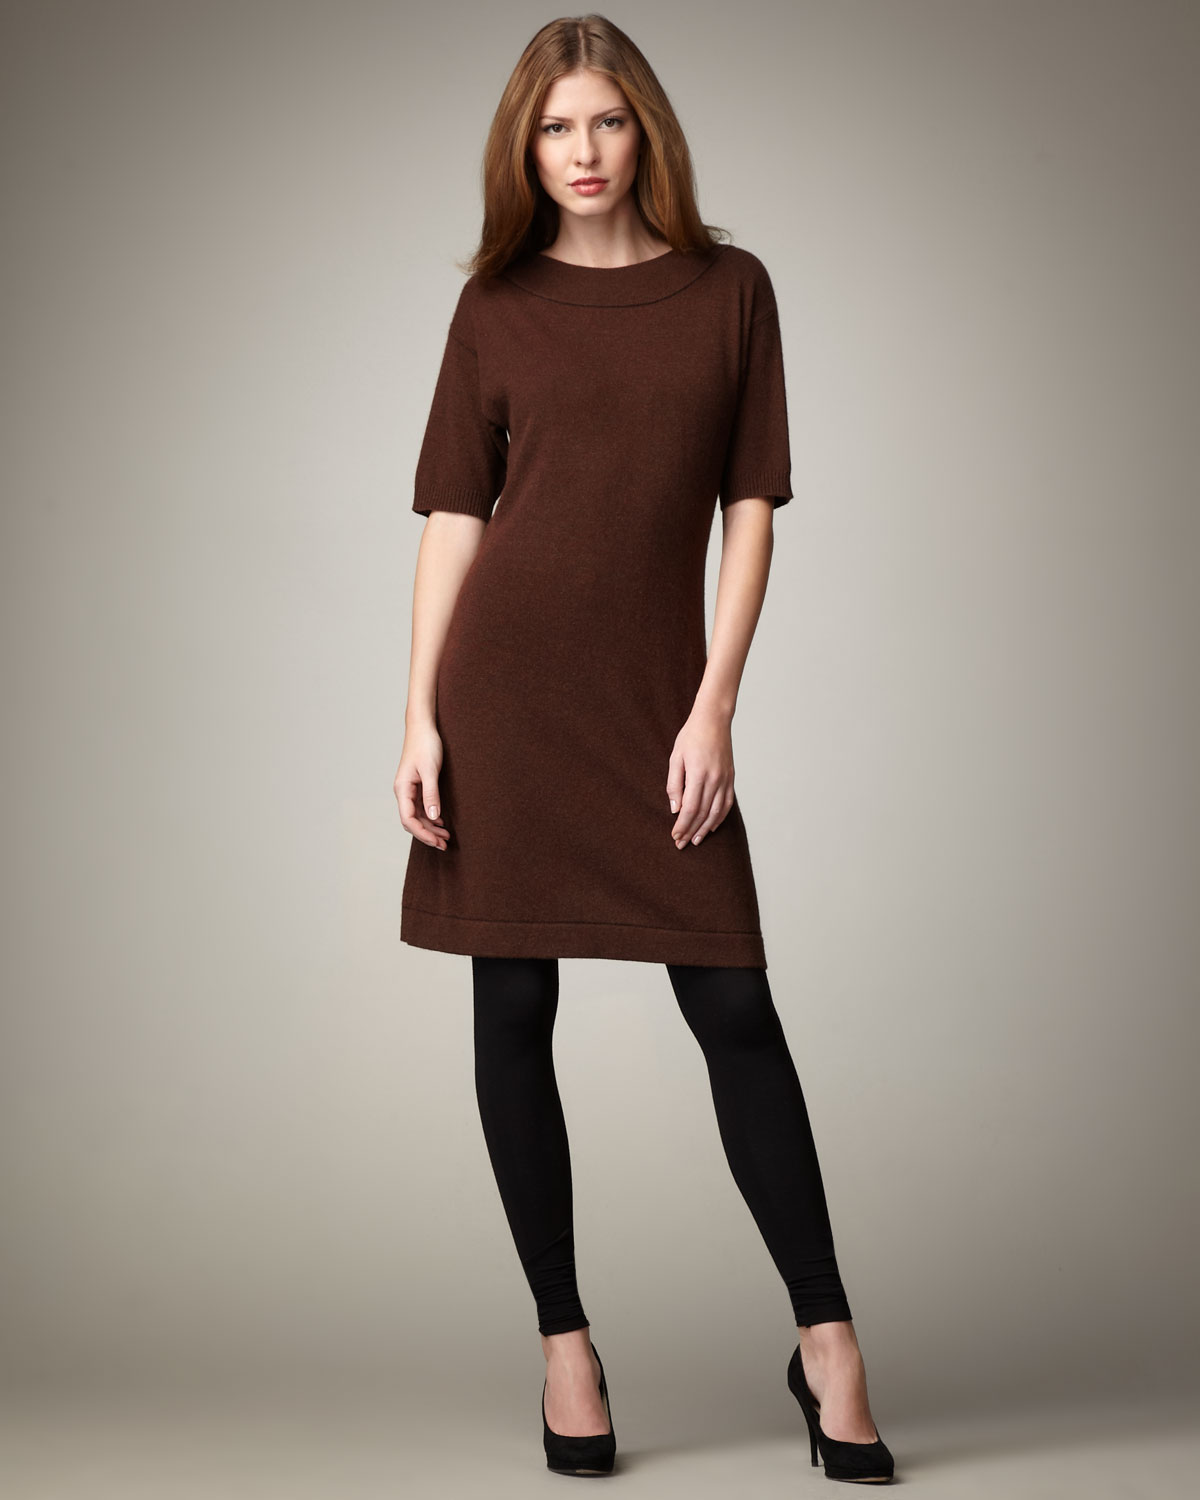 Black dress neiman marcus - Gallery Previously Sold At Neiman Marcus Women S Brown Dresses